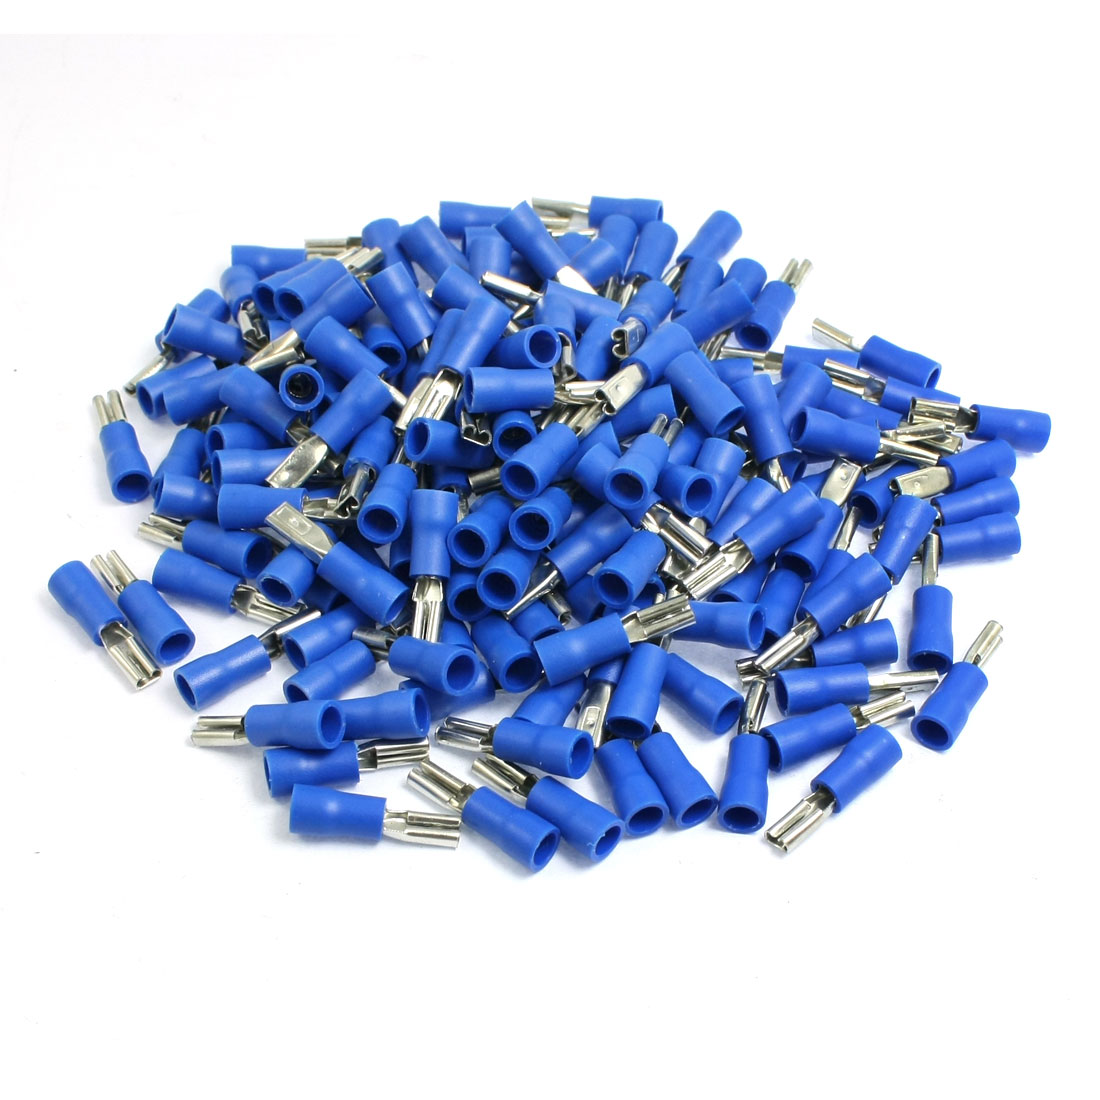 150pcs Pre Insulated Female Spade Crimp Terminals Blue for AWG 16-14 Cable